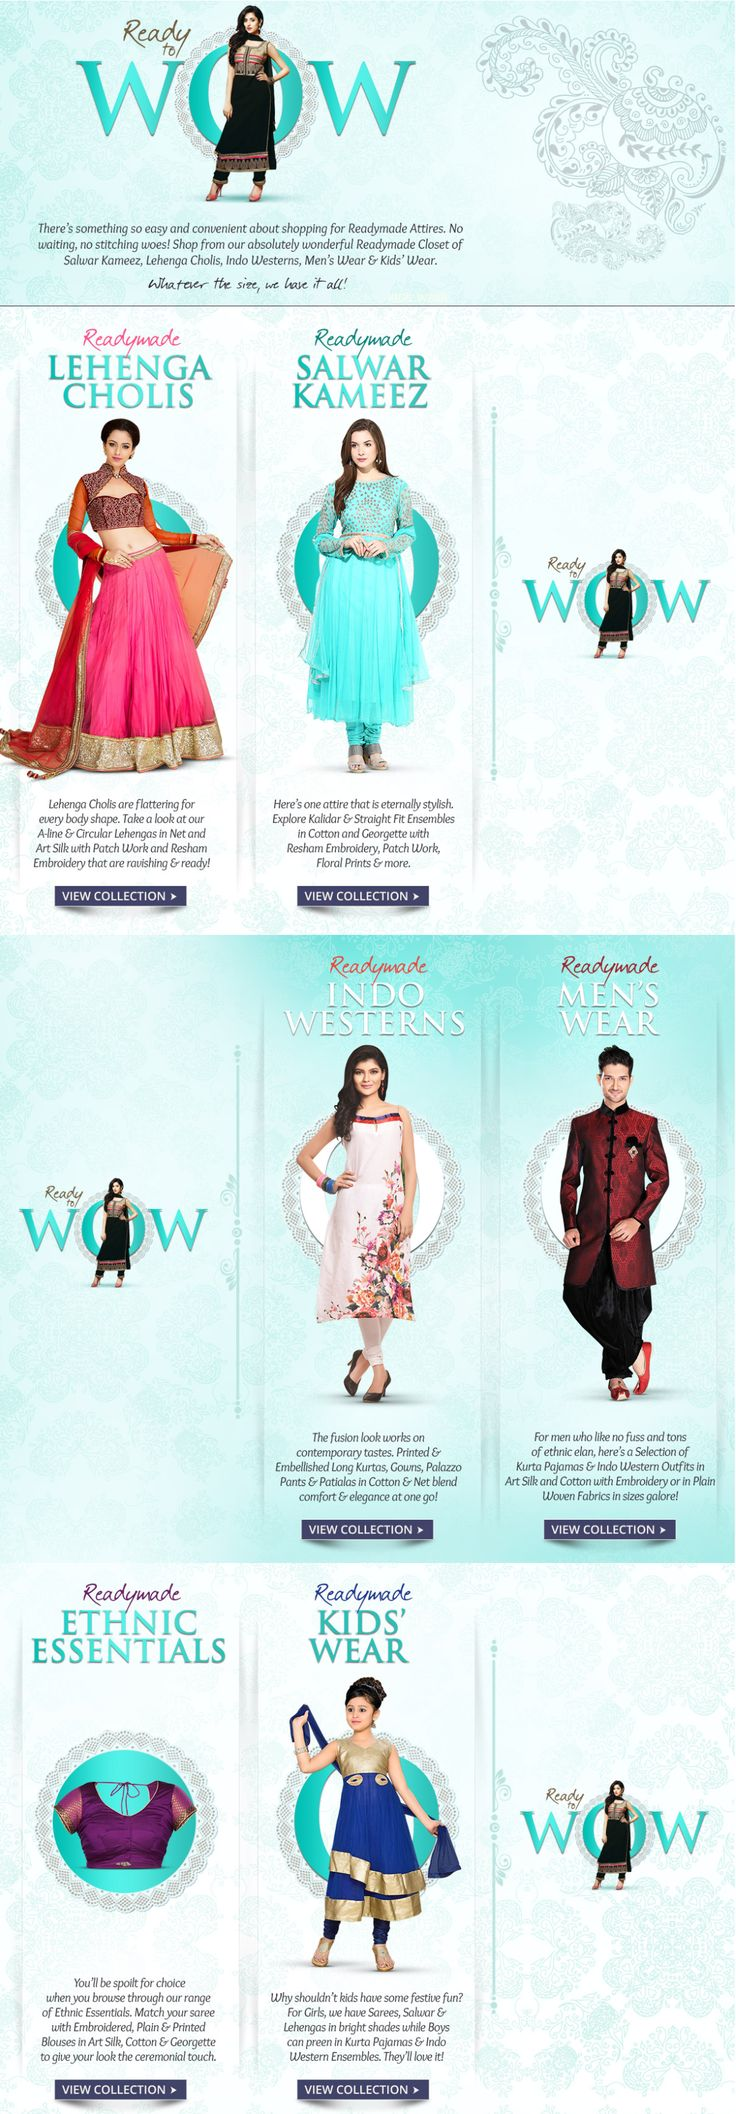 Get a variety of hassle-free, ready to wear styles in traditional Salwar Kameez, easy to wear Lehengas, classy Indowesterns and readymade Mens and Kids wear